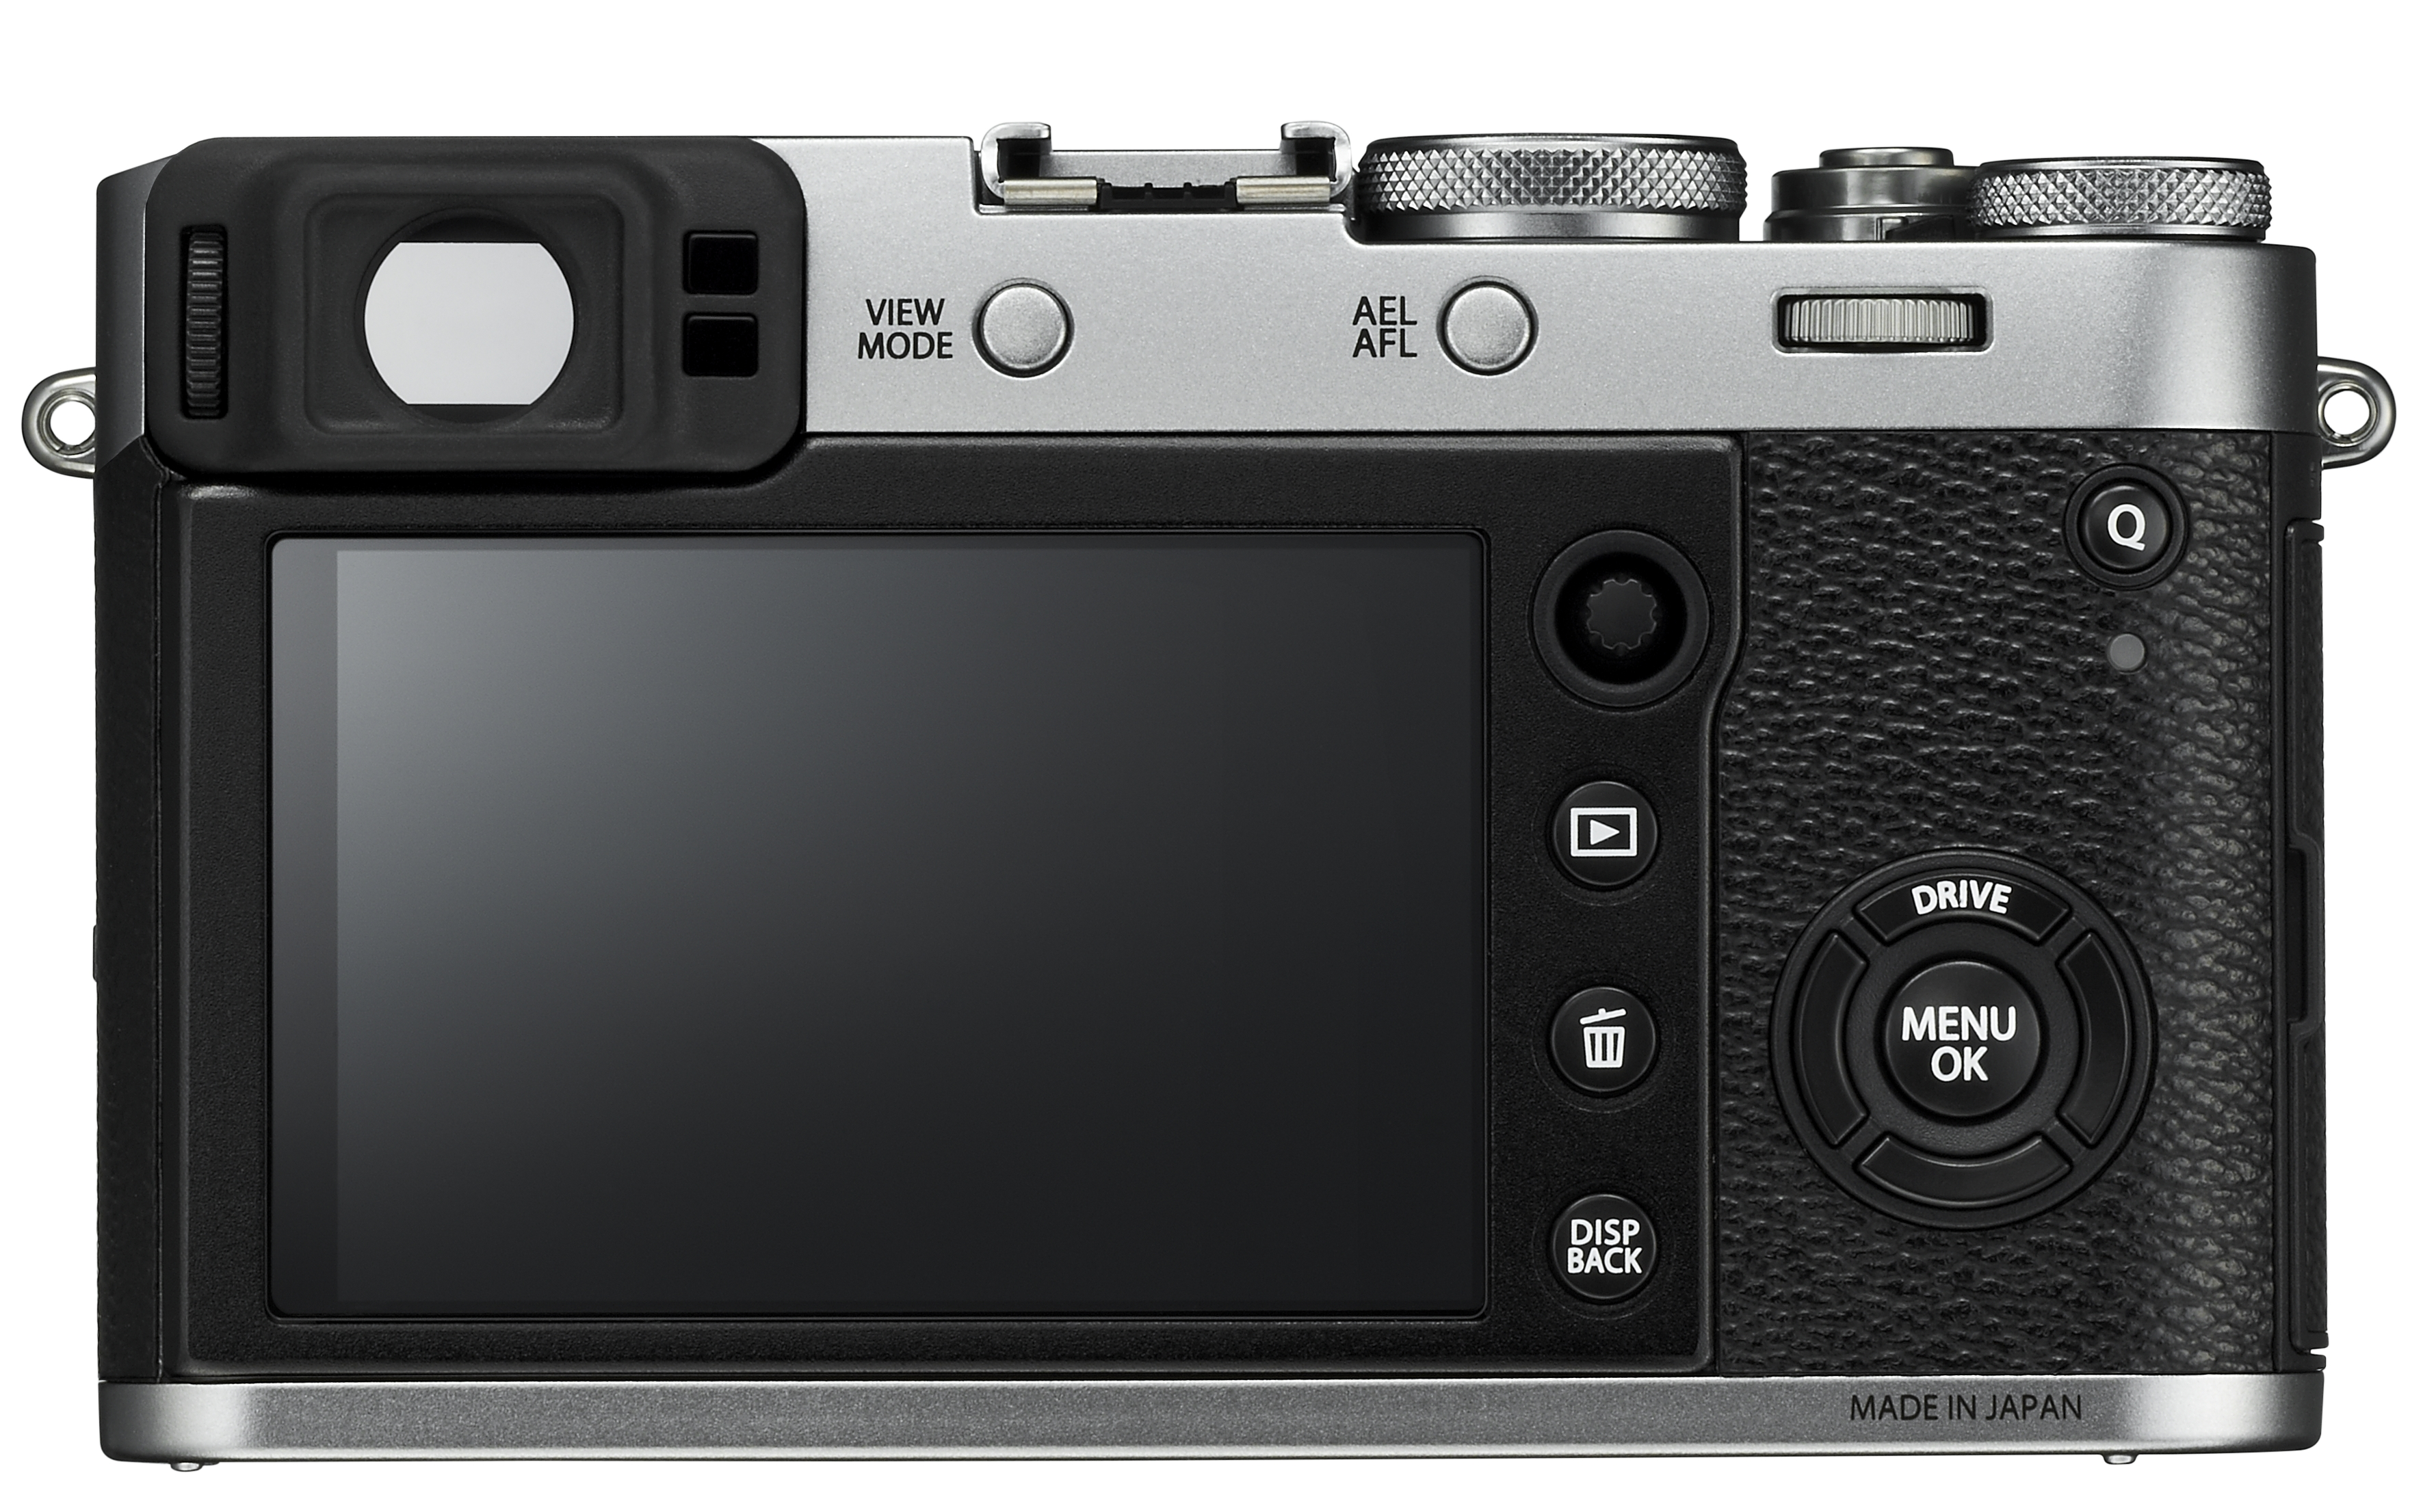 Fujifilm's latest X-Series cameras offer faster, sharper shooting